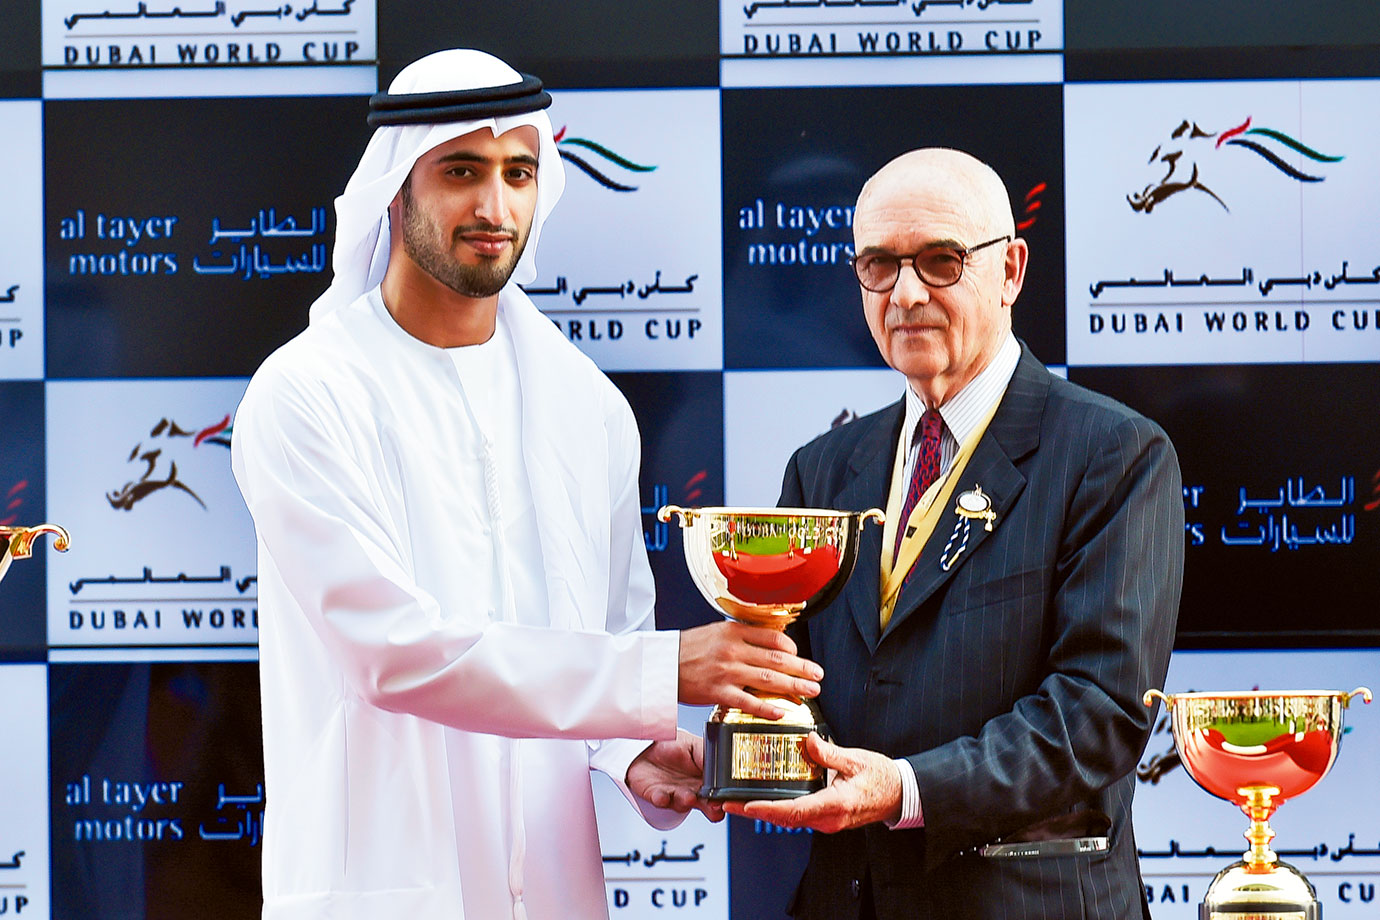 Humaid Tariq Al Tayer presents the trophy to the trainer Alain De Royer-Dupre